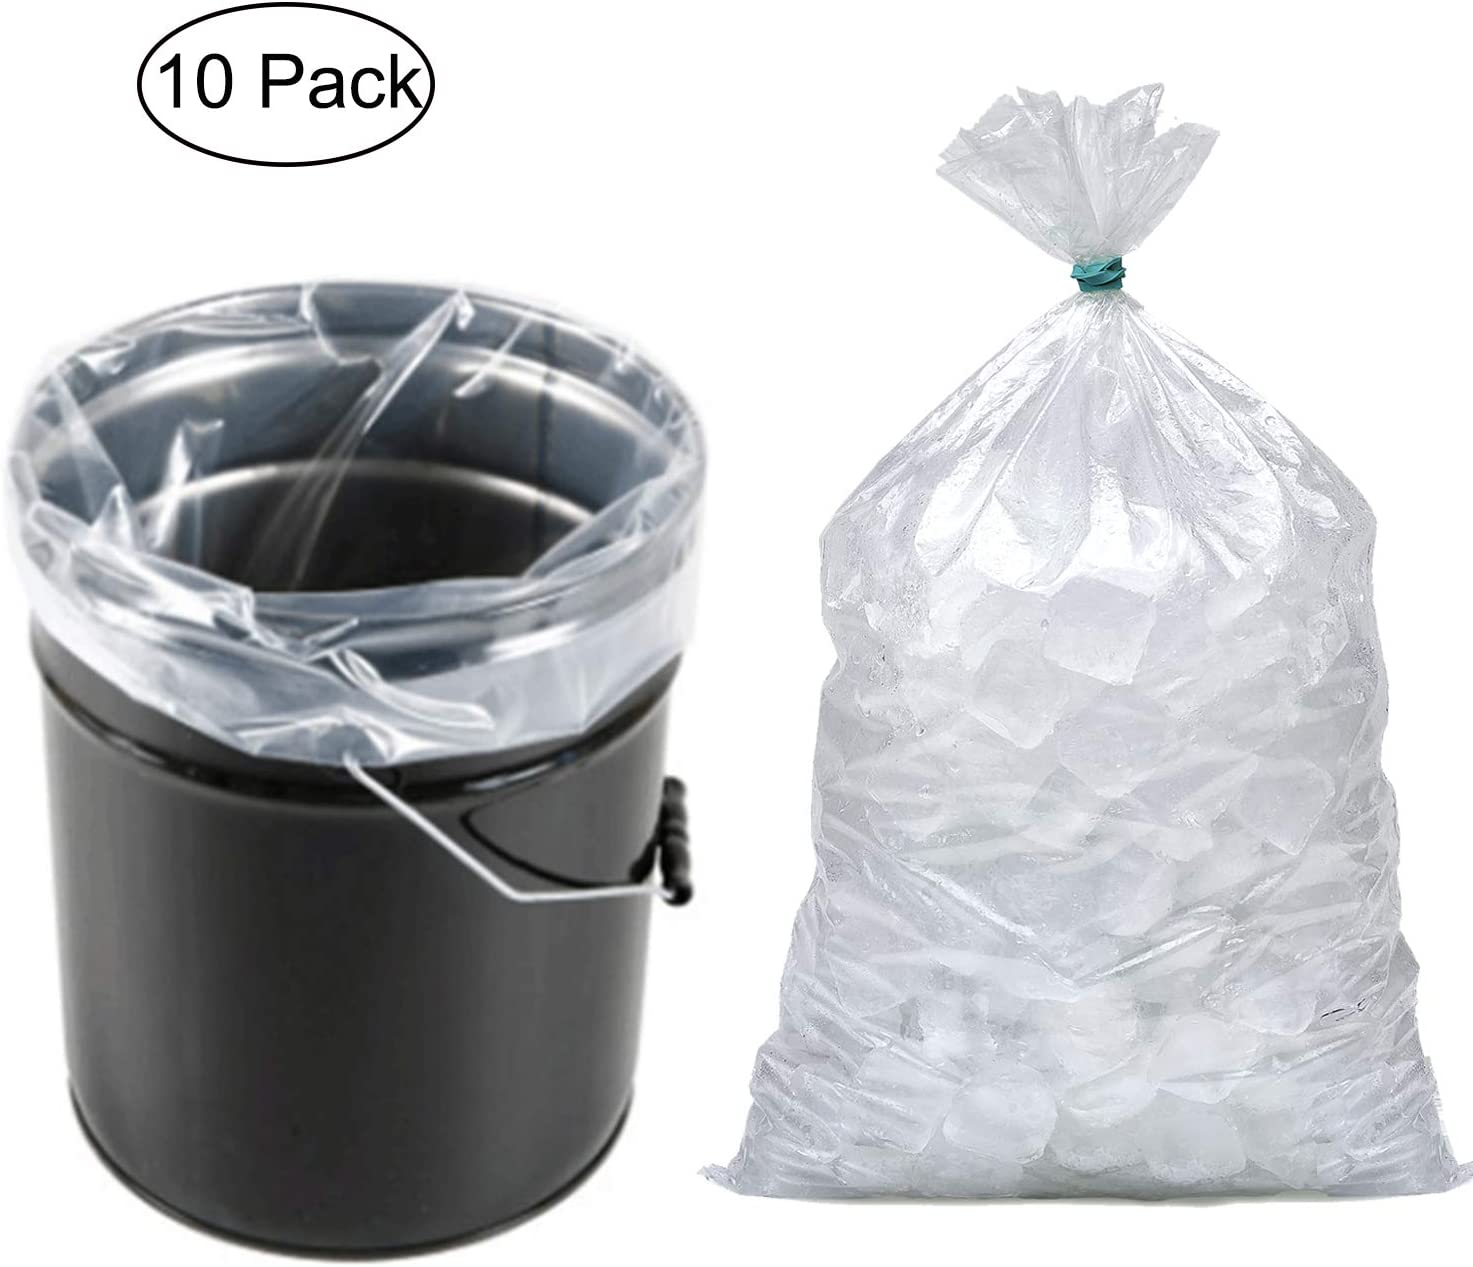 5 Gallon Bucket Liner Bags for Marinating and Brining, Food Grade, BPA Free, Great for Storage Food Extra Heavy Duty Leak Proof 10PCS